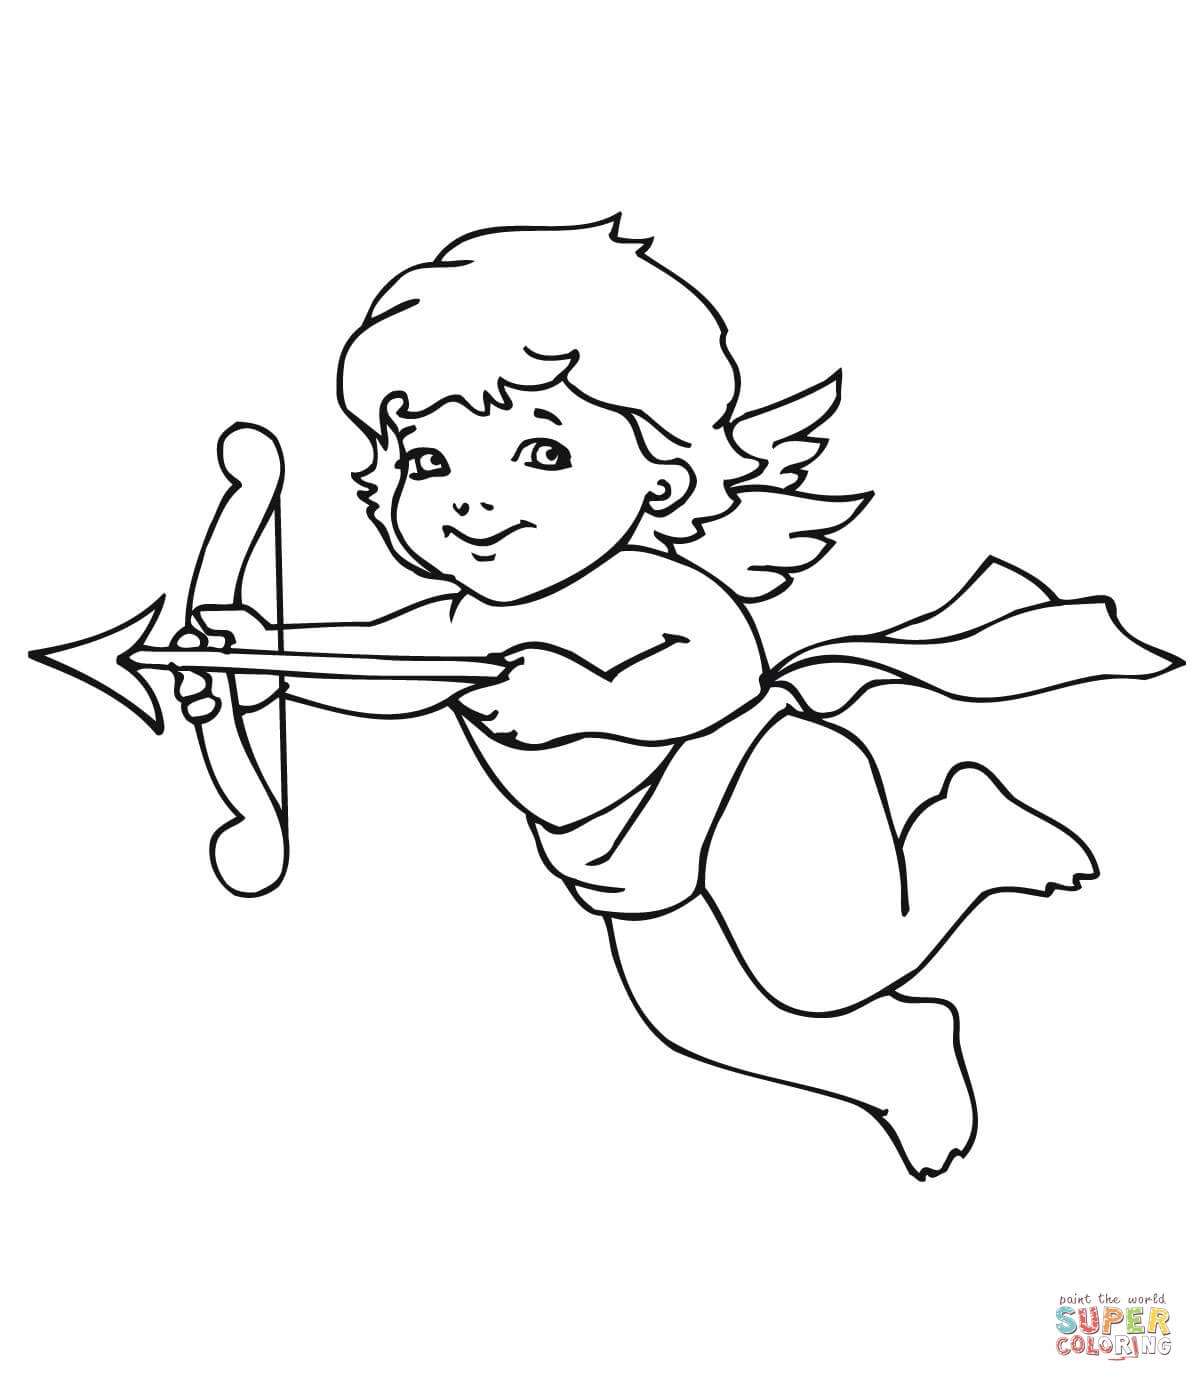 Cute Valentine Cupid Coloring Page   Free Printable Coloring Pages - Free Printable Pictures Of Cupid